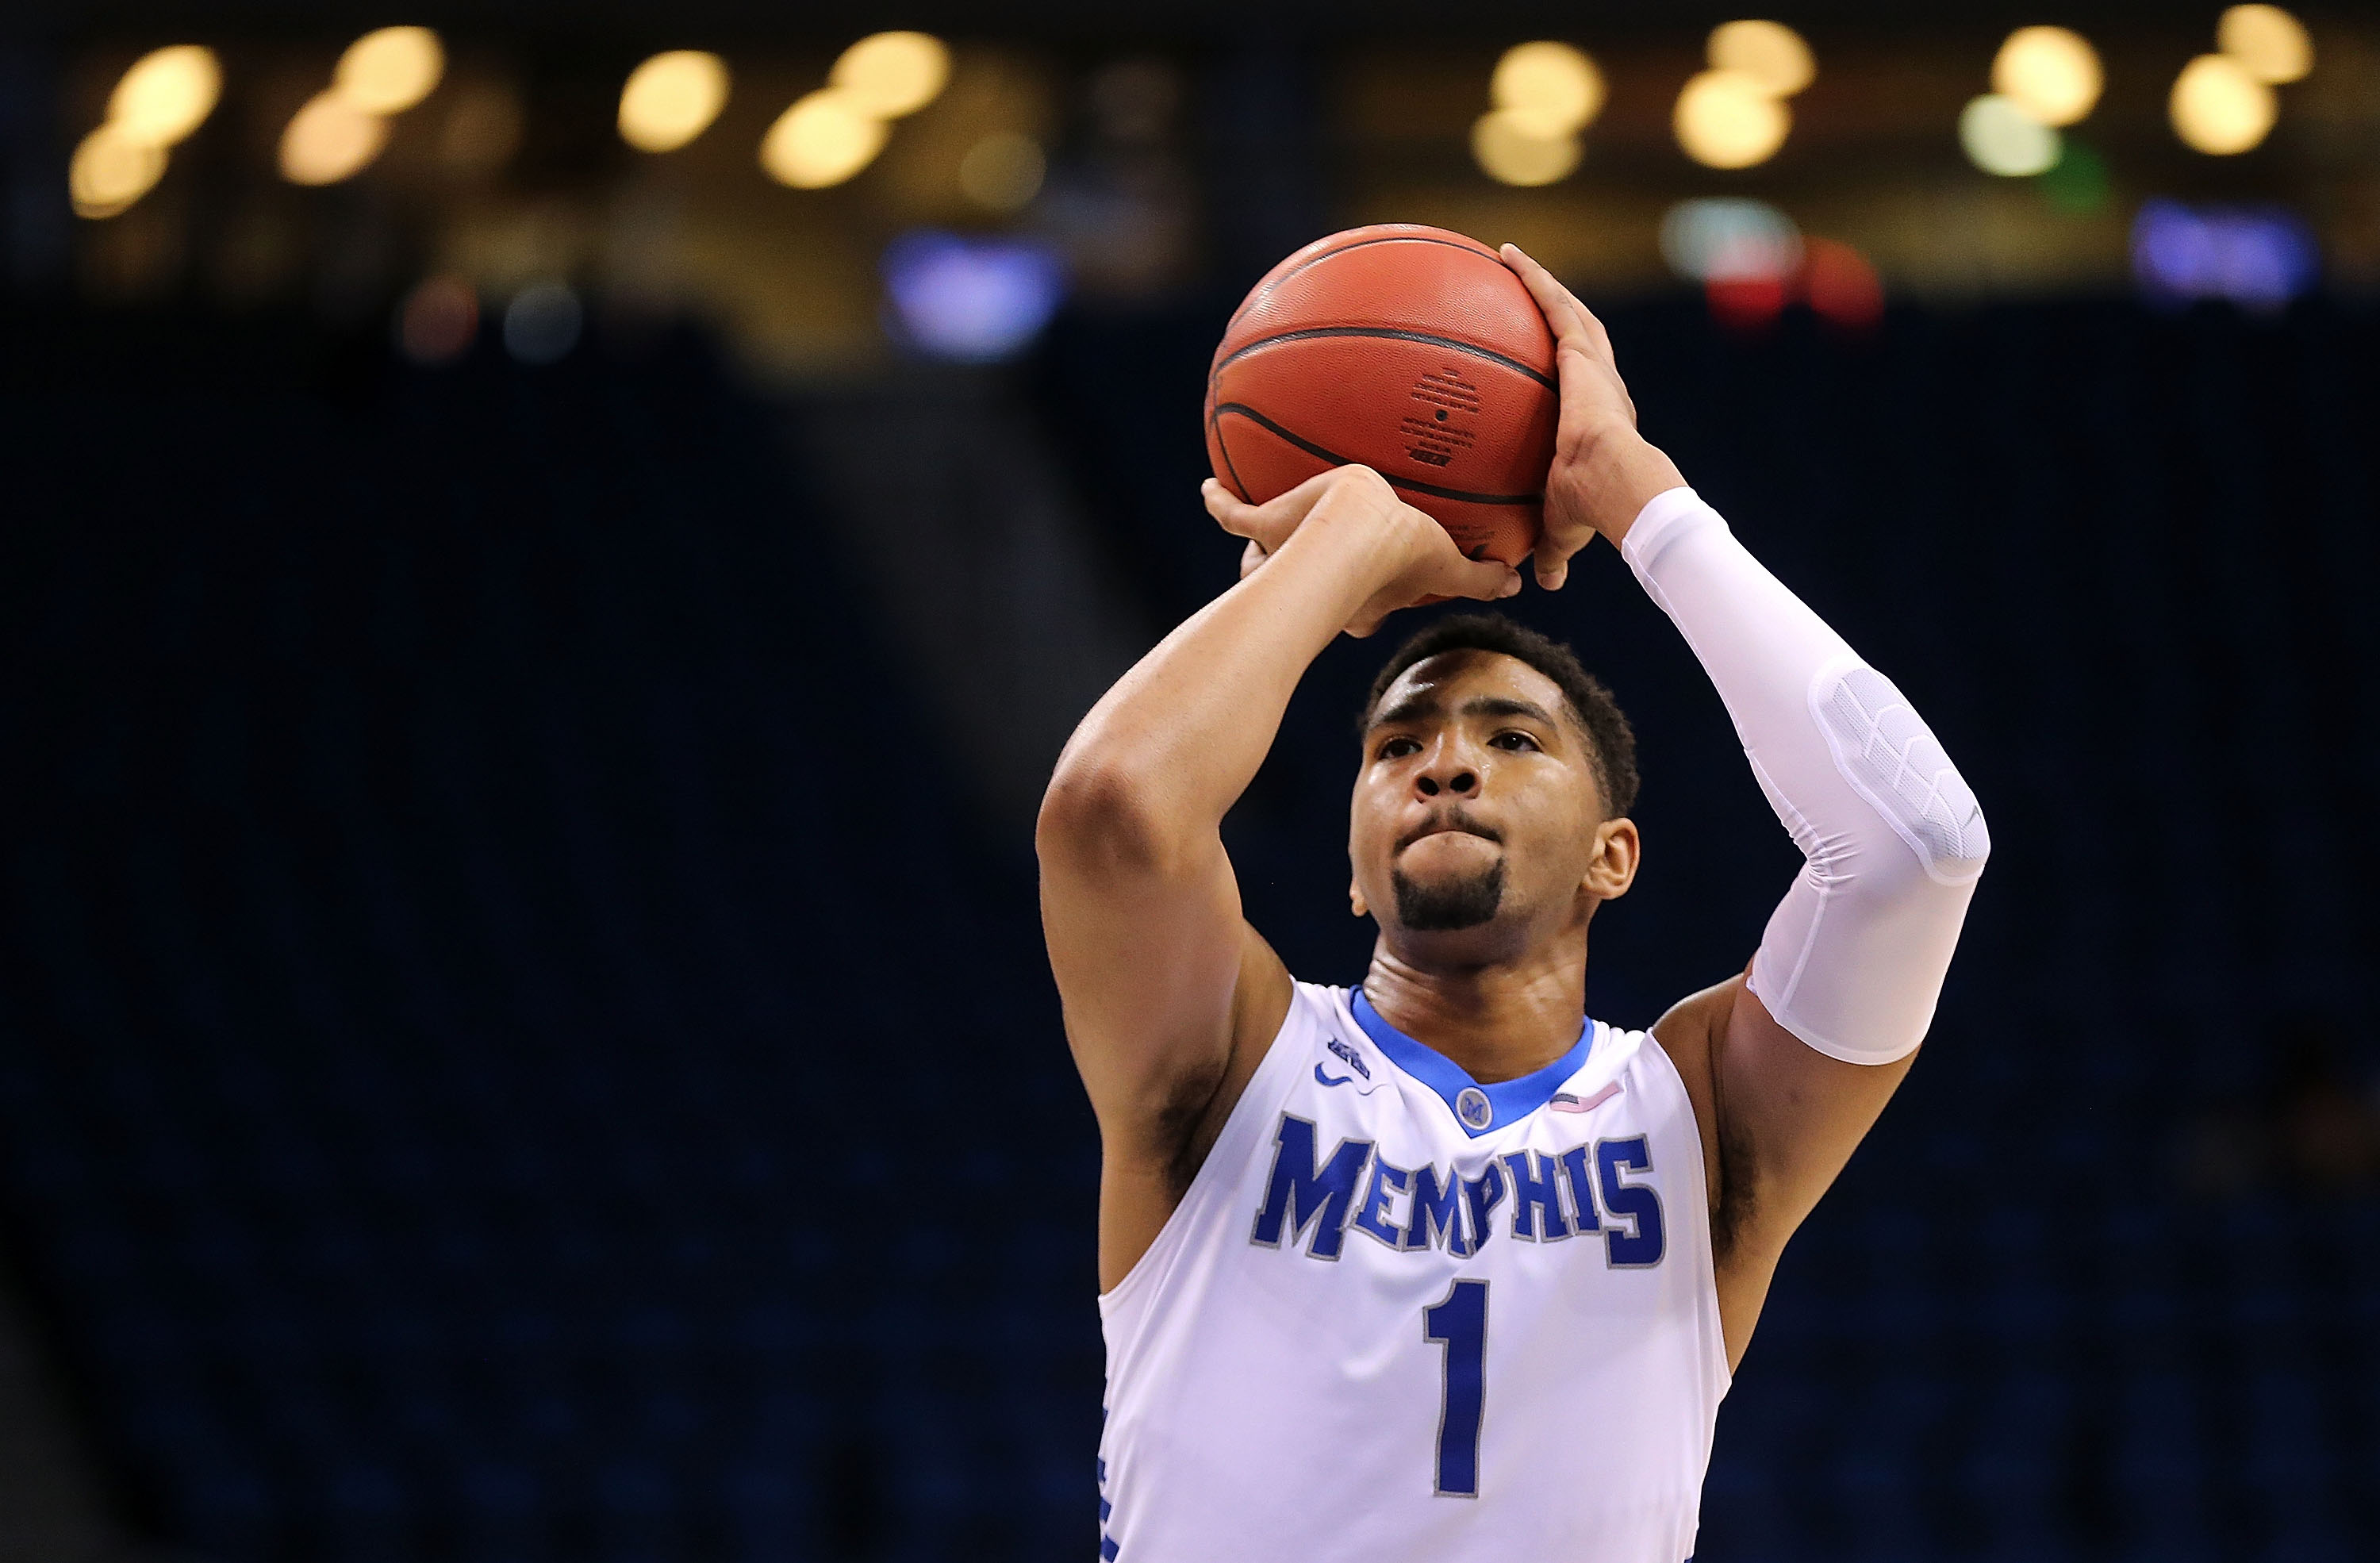 ORLANDO, FL - MARCH 12: Dedric Lawson #1 of the Memphis Tigers shoots a foul shot during a semifinal game of the 2016 AAC Basketball Tournament against the Tulane Green Wave at Amway Center on March 12, 2016 in Orlando, Florida. (Photo by Mike Ehrmann/Getty Images)